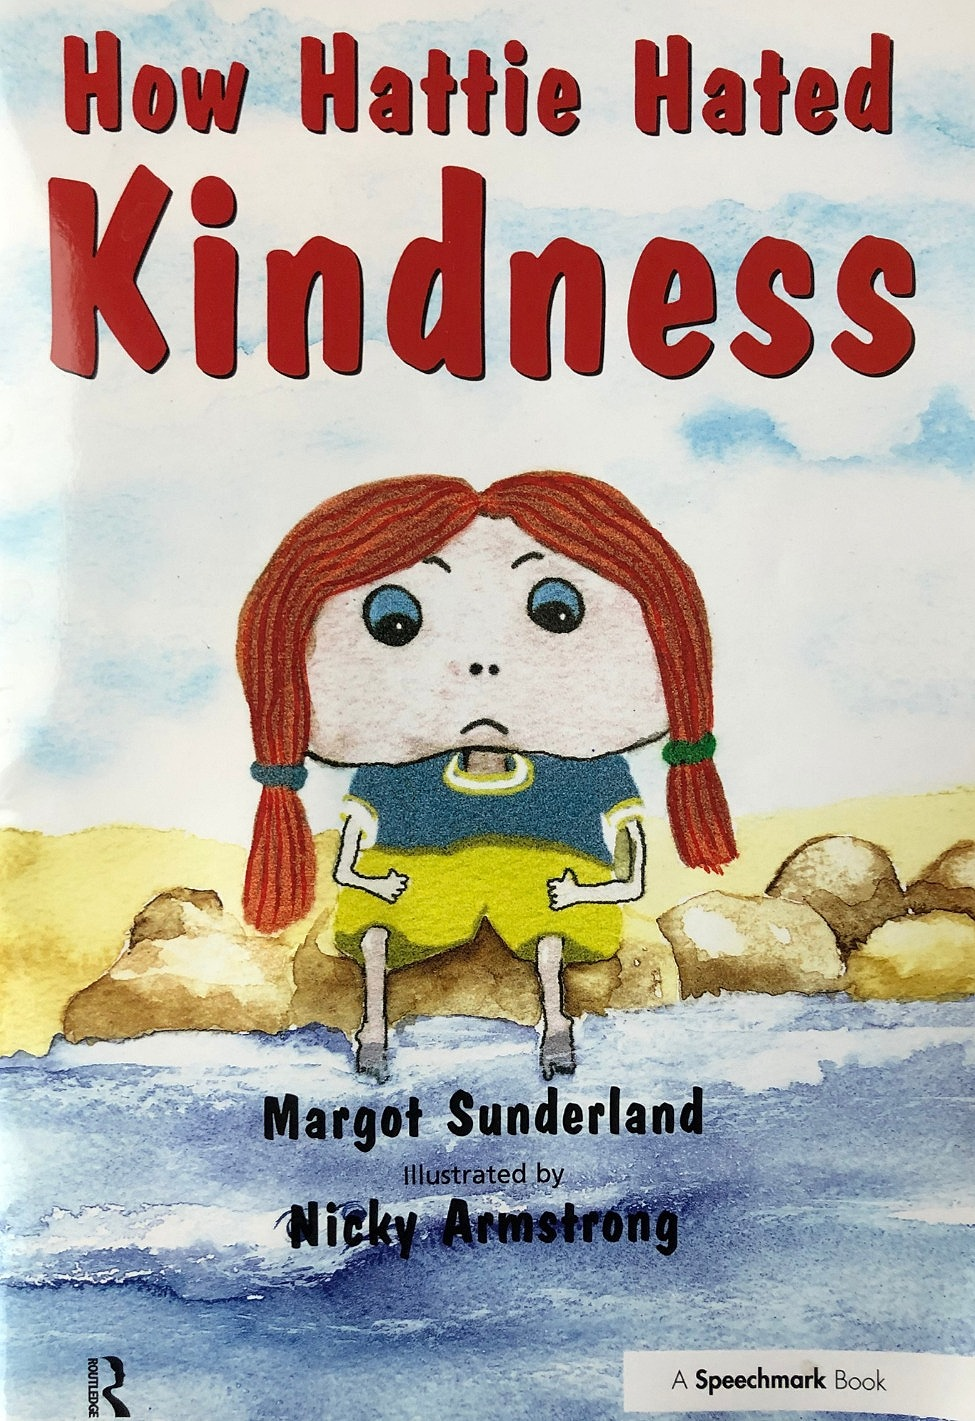 How Hattie Hated Kindness